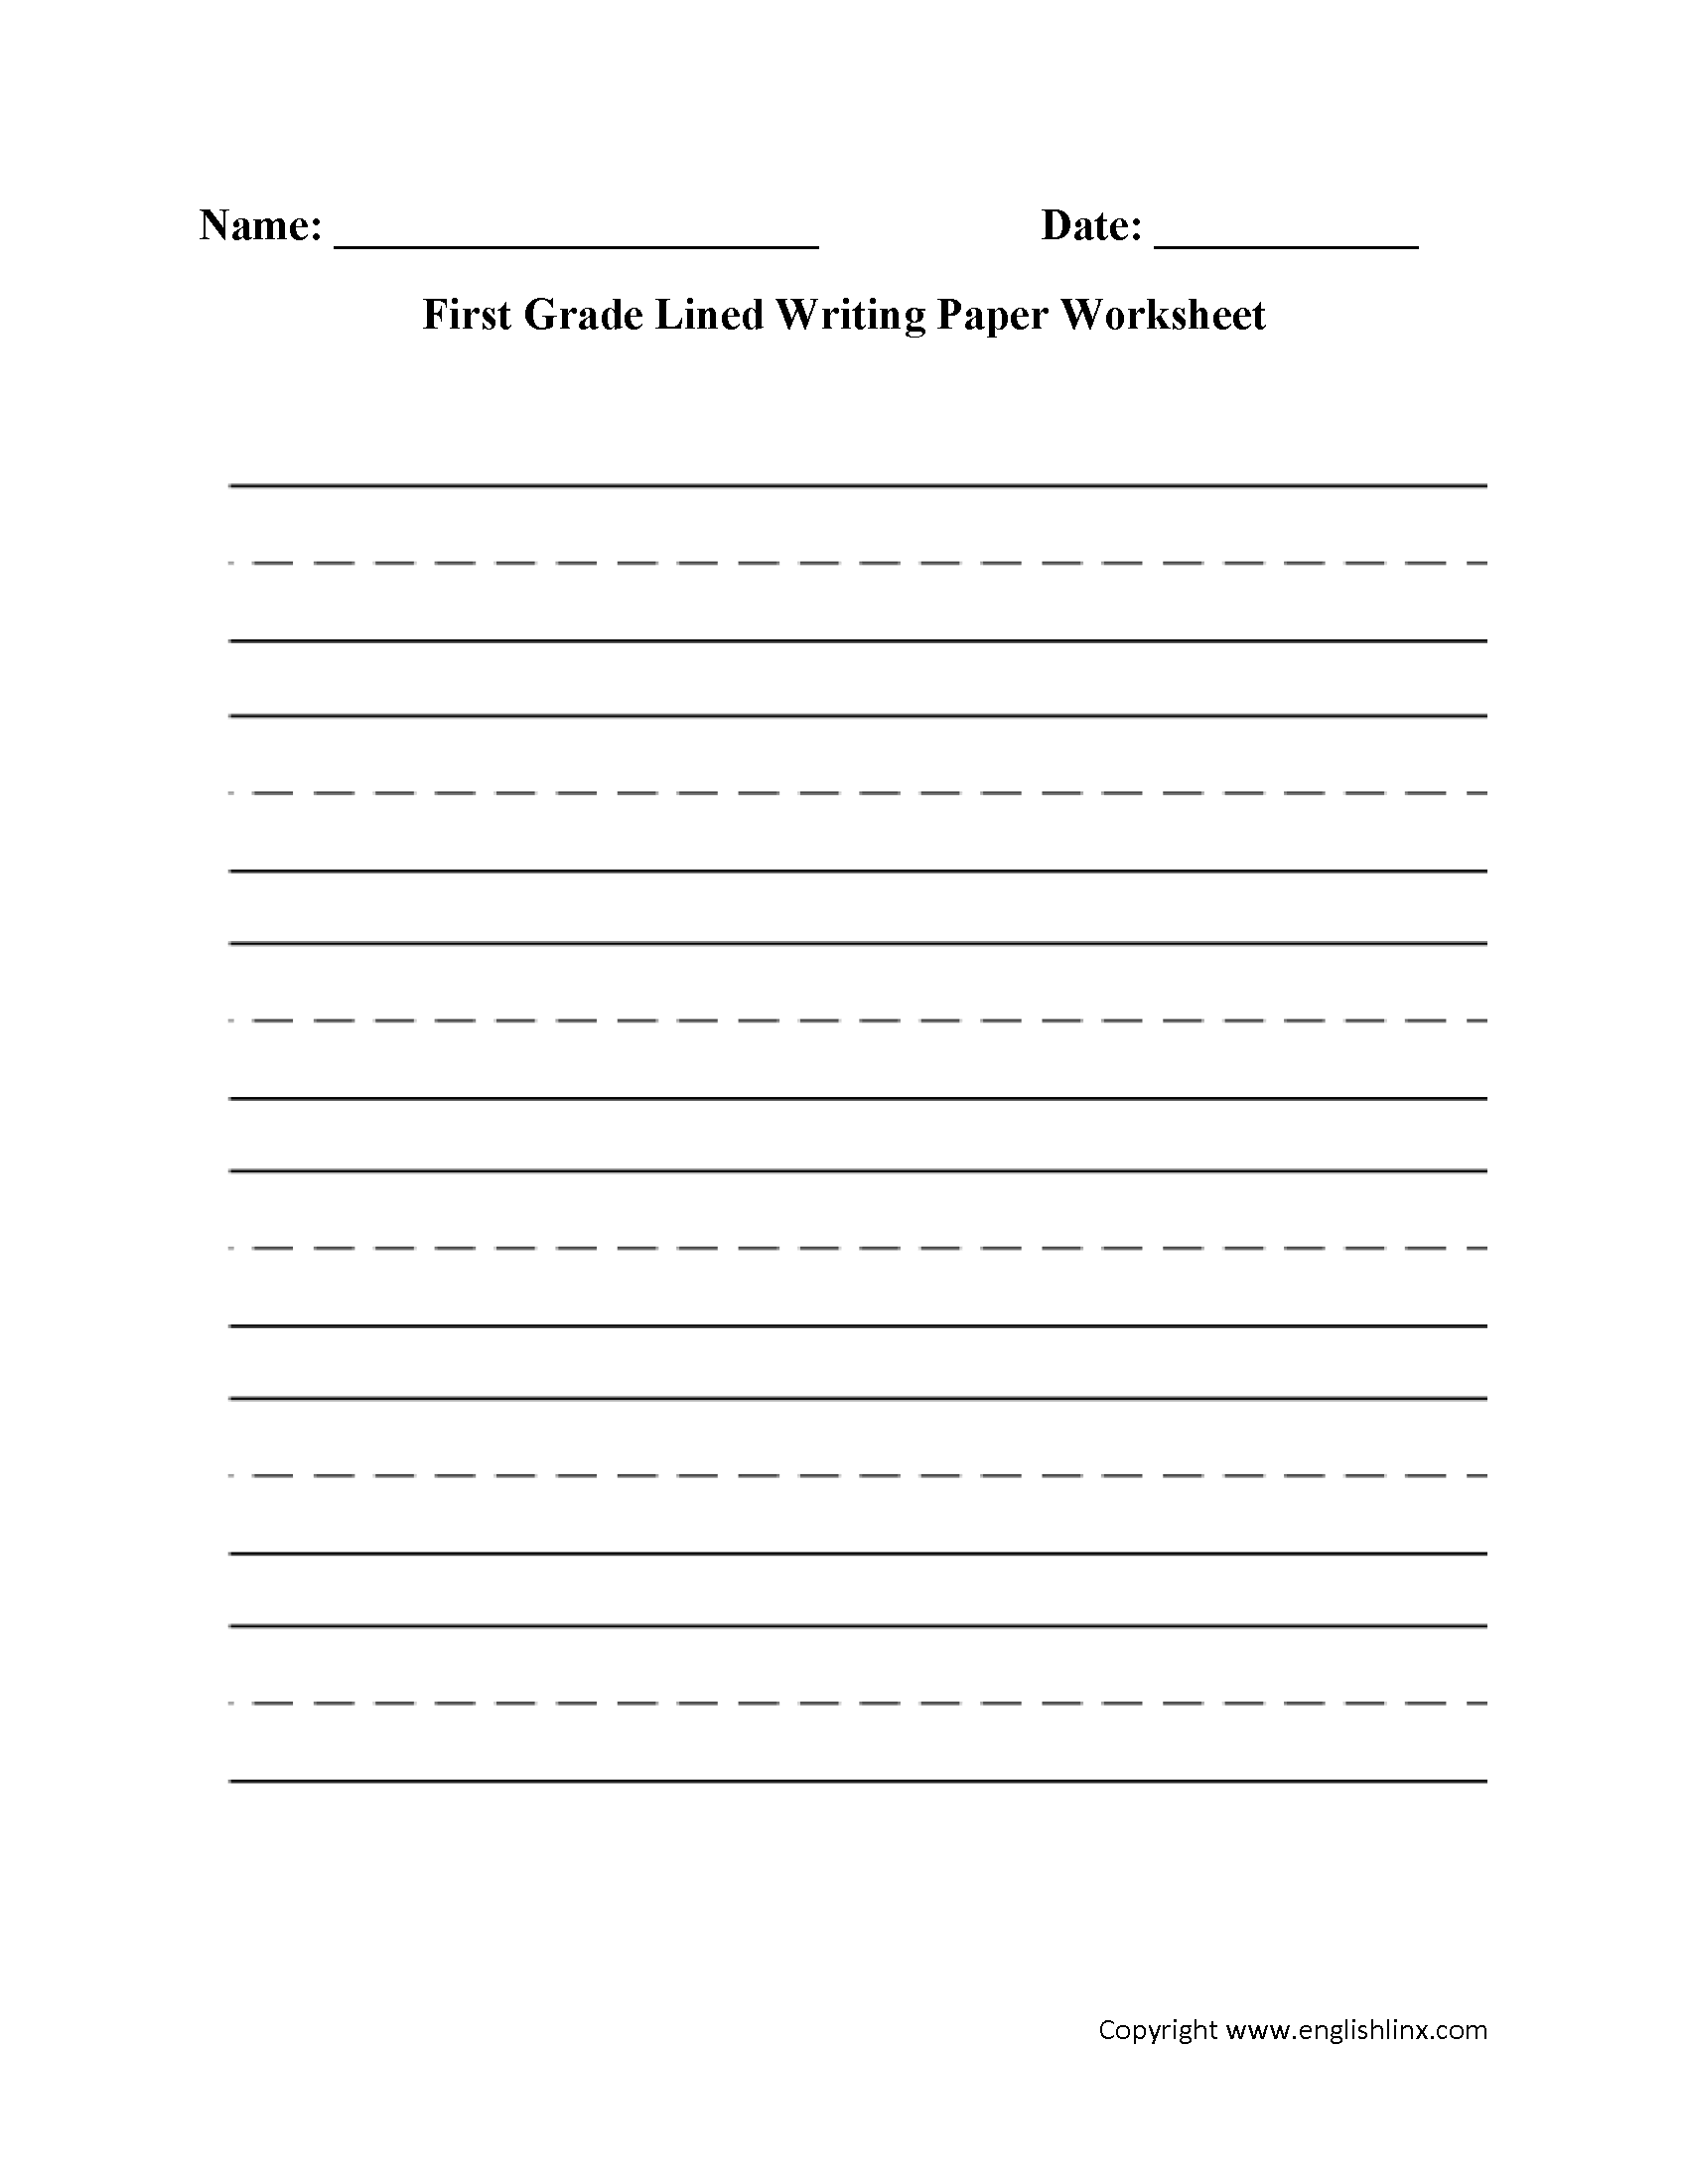 Worksheets Writing Worksheets For First Grade writing sheet for 1st grade ibov jonathandedecker com worksheets lined paper grade